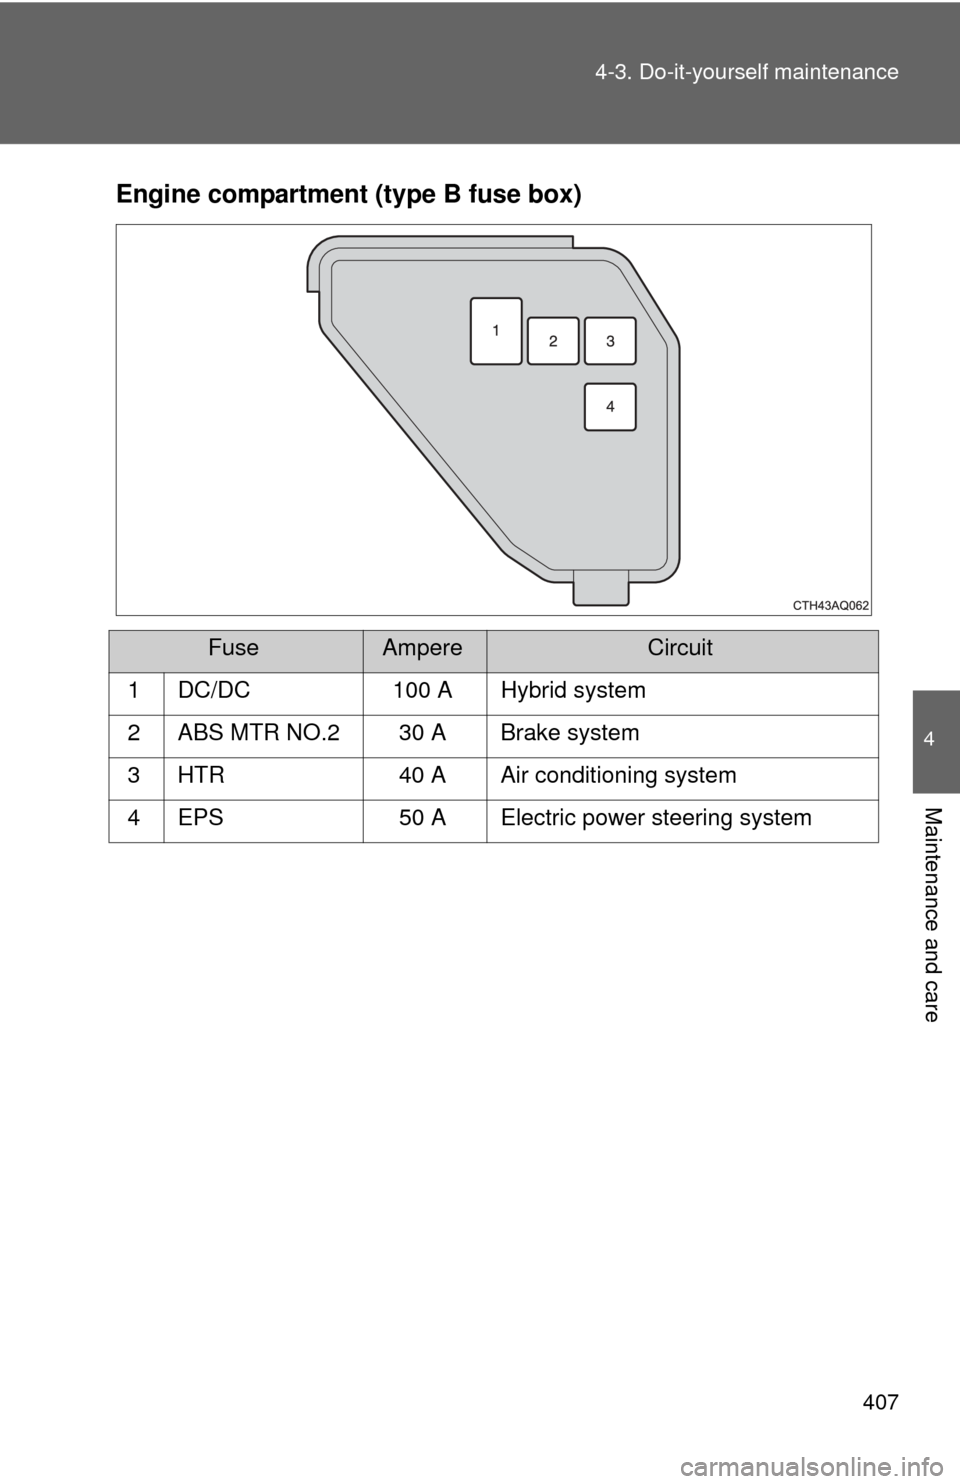 Toyota Prius C 2012 Nhp10 1g Owners Manual Fuse Box Page 407